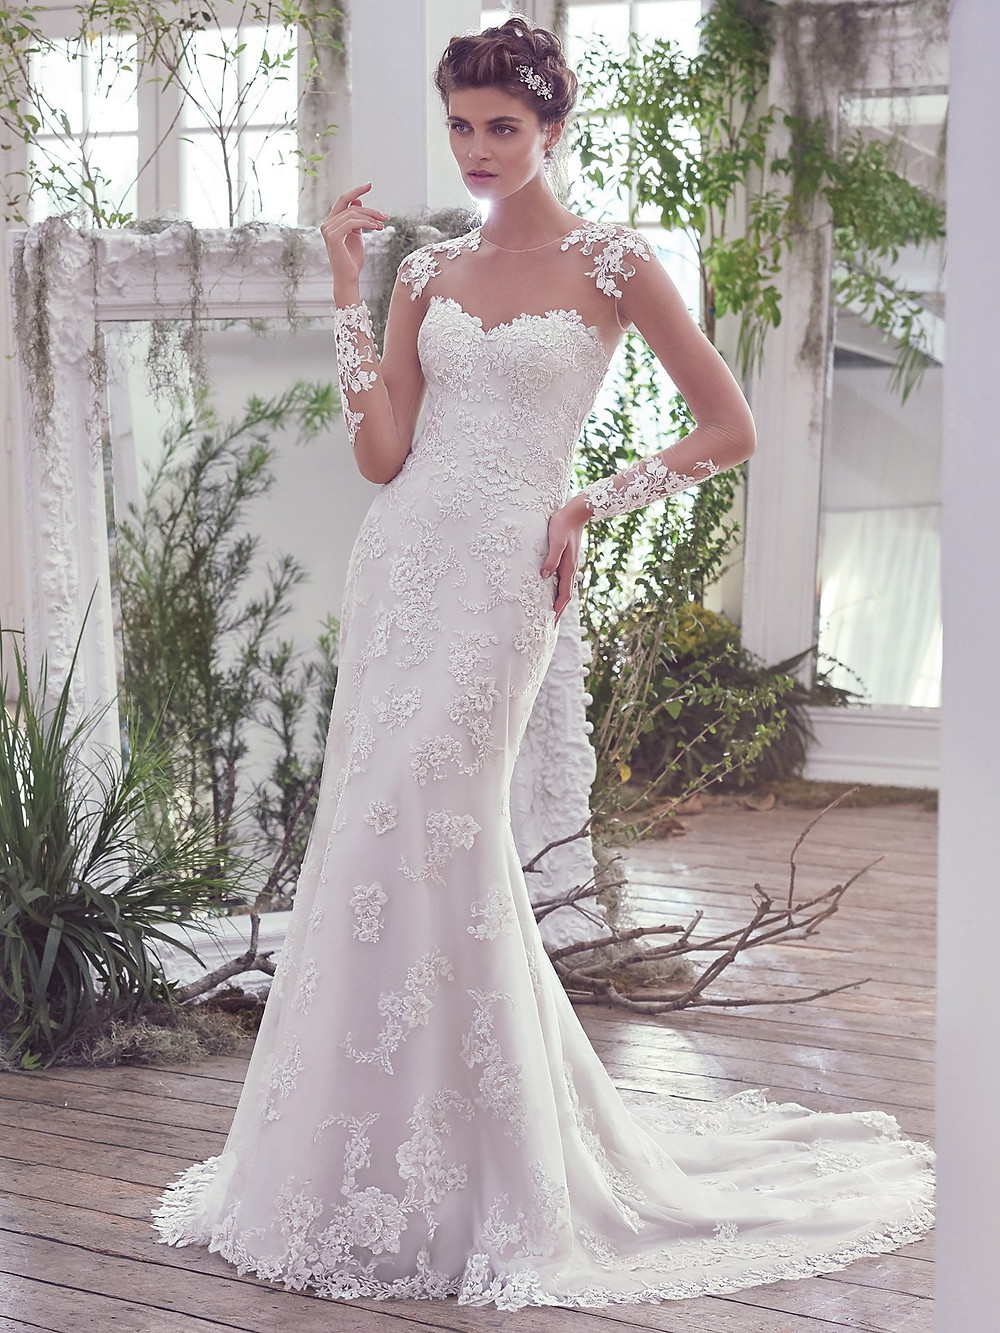 Rosaleigh by Maggie Sottero